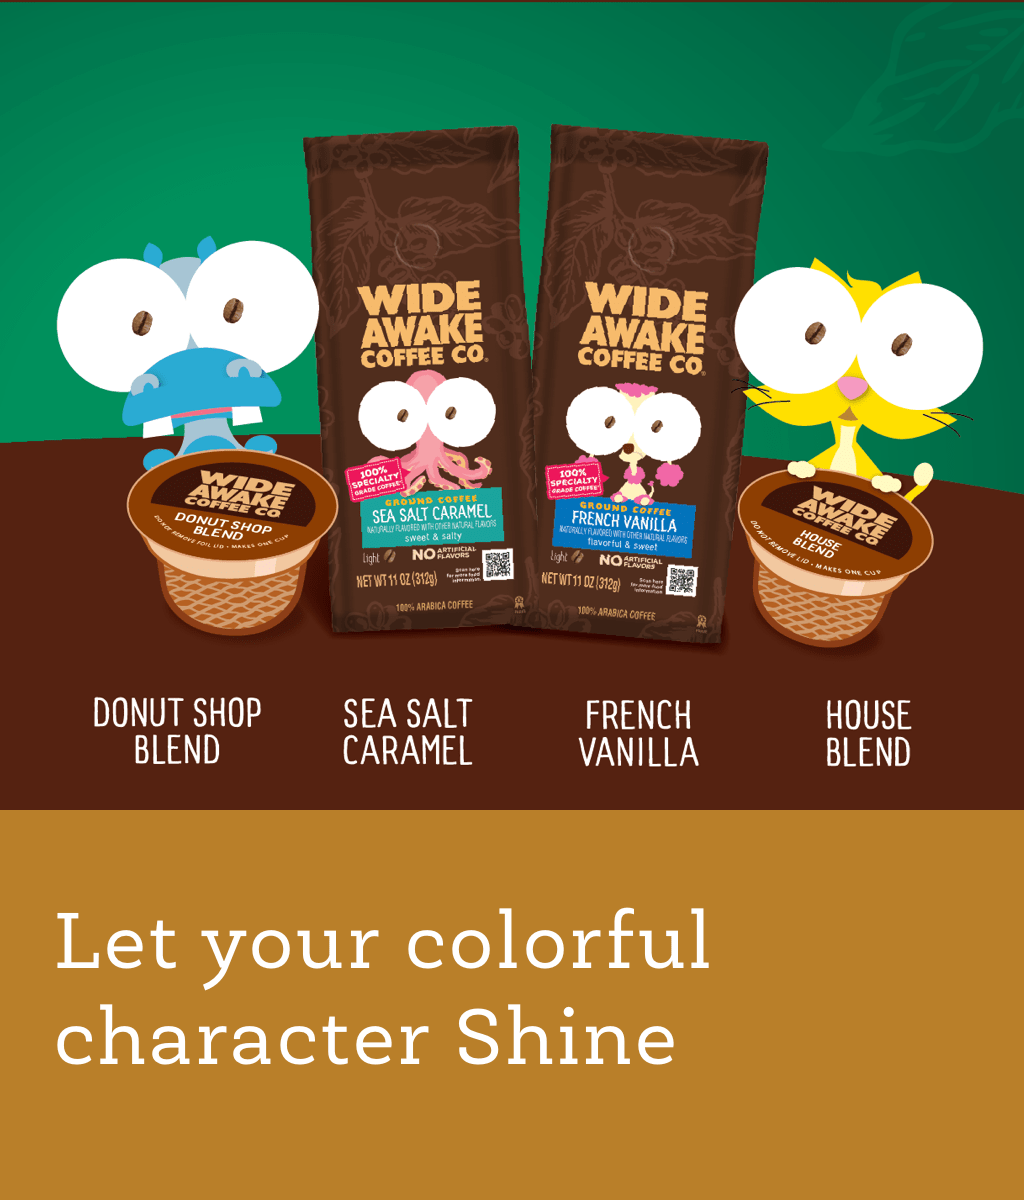 Let Your Colorful Character Shine With Wide Awake Coffee Products